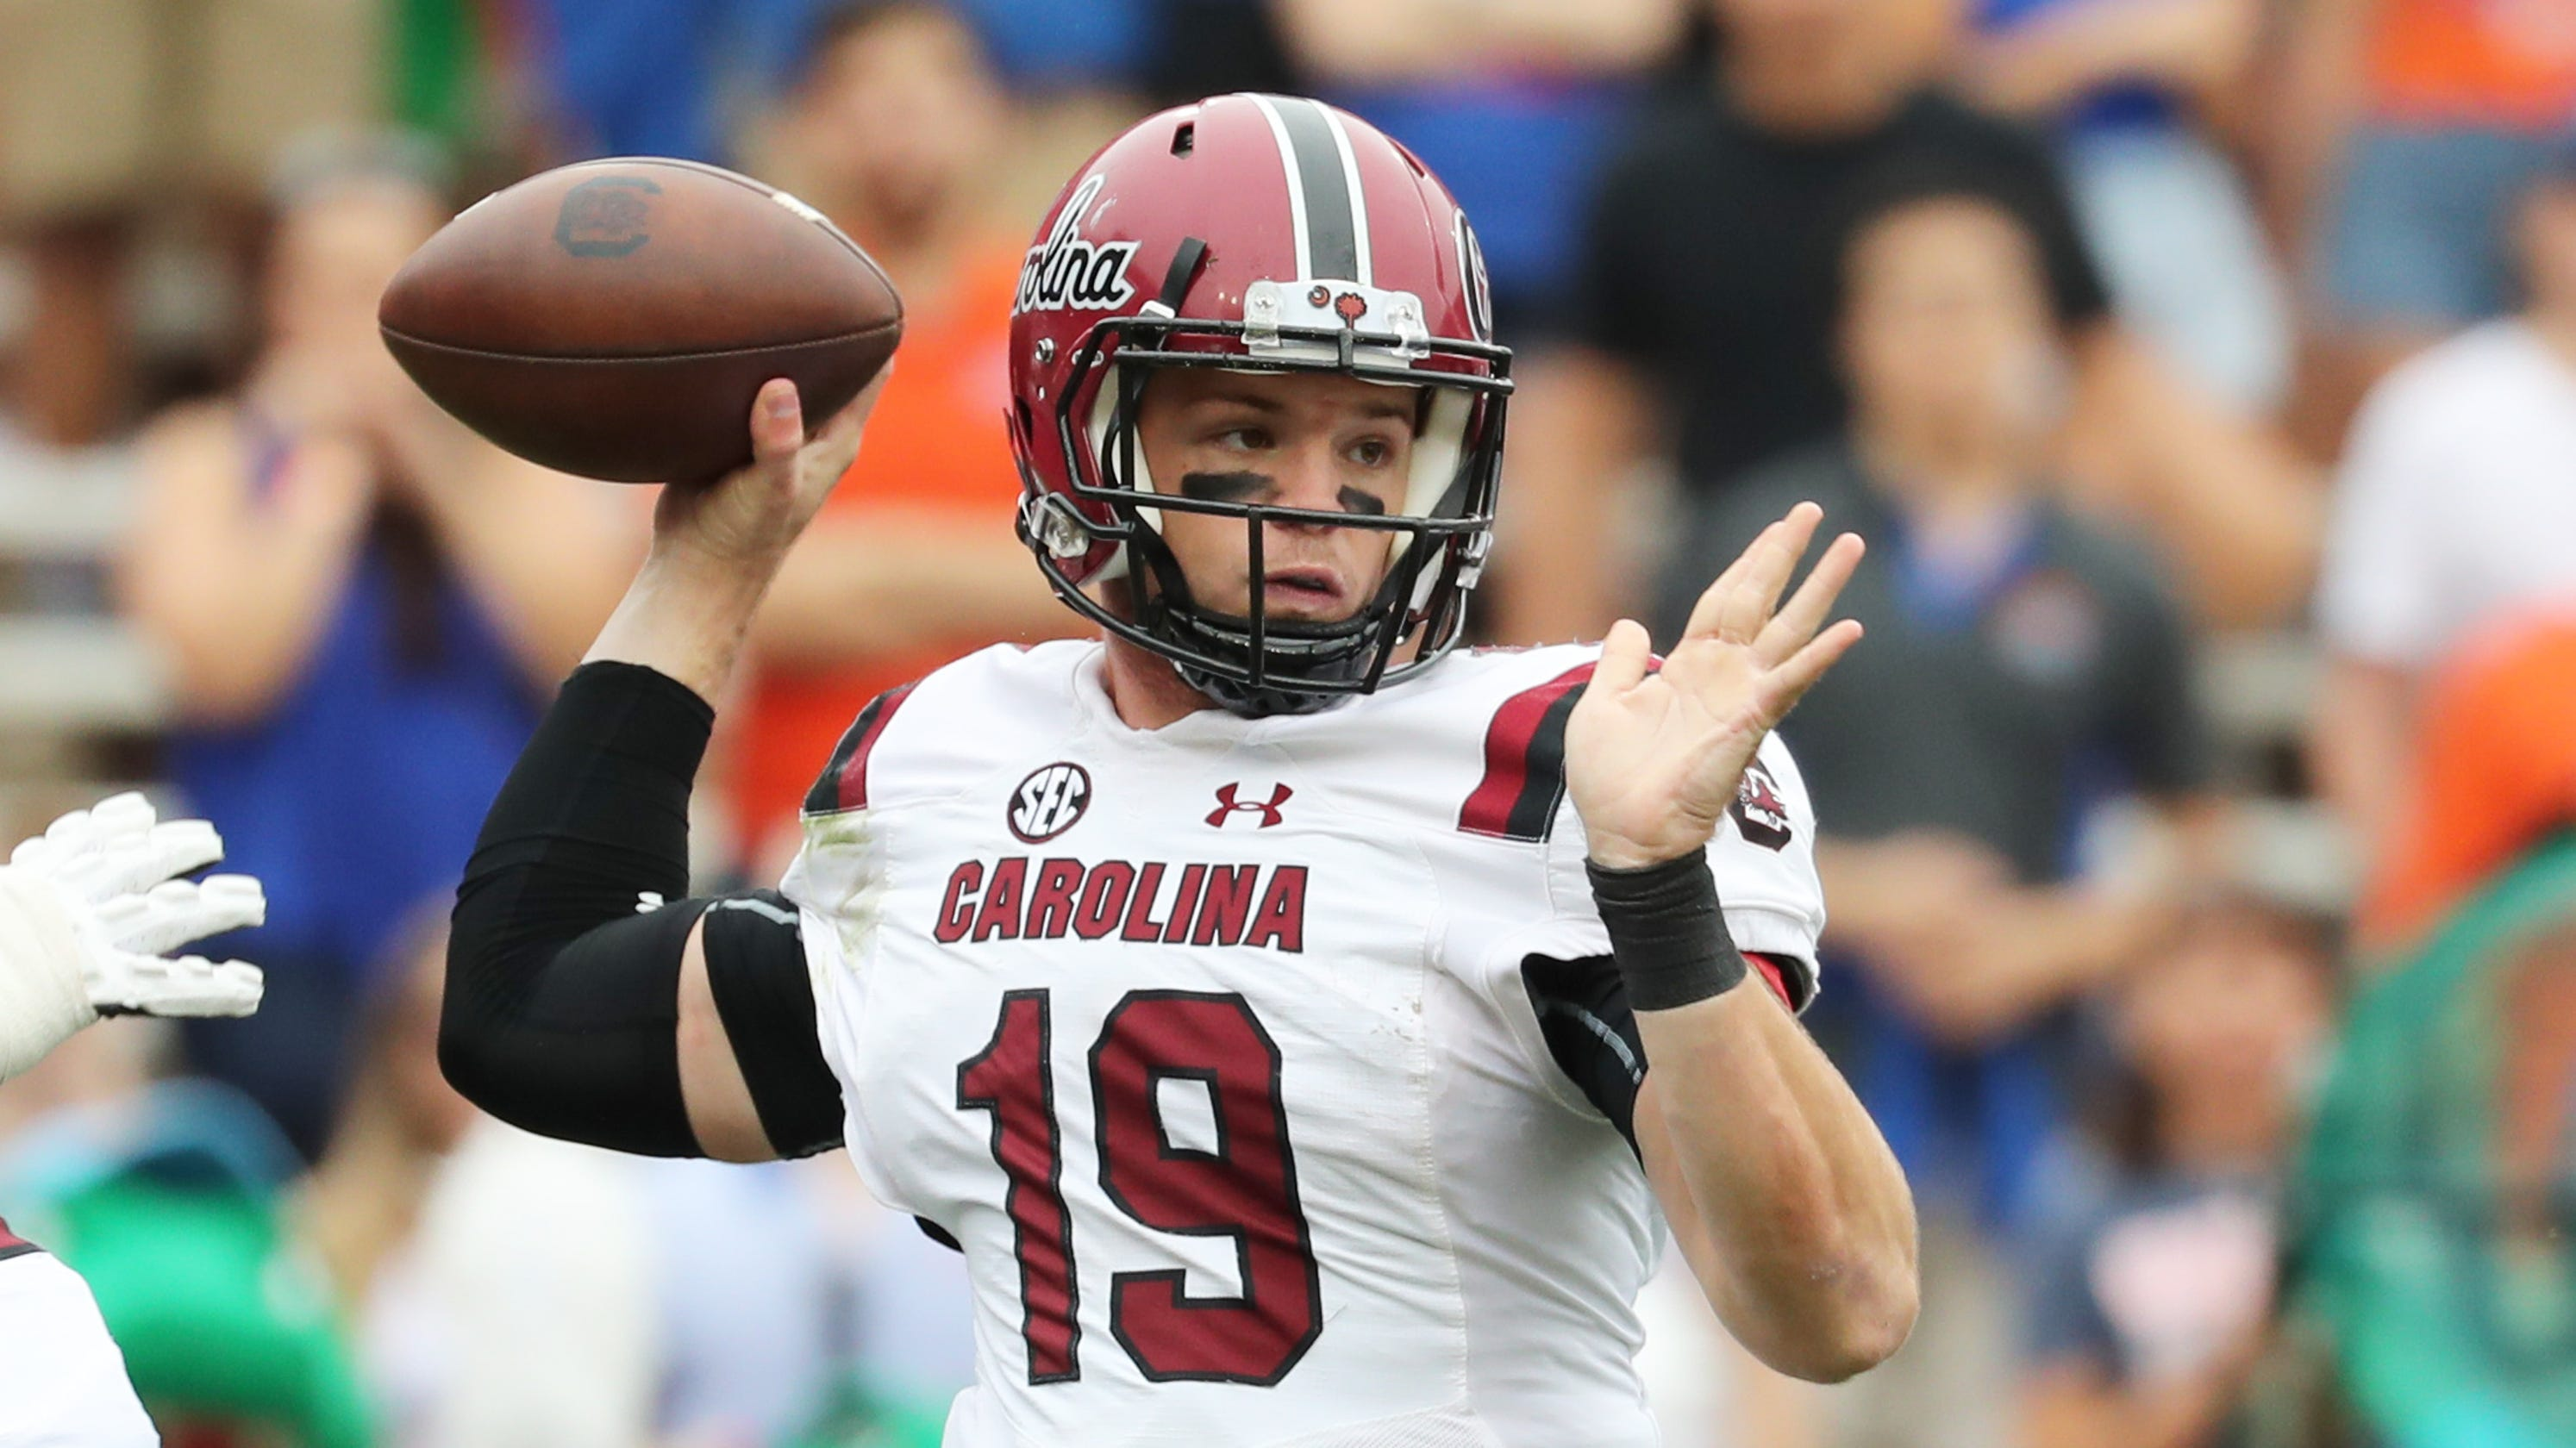 South Carolina football: 2019 football schedule is brutal